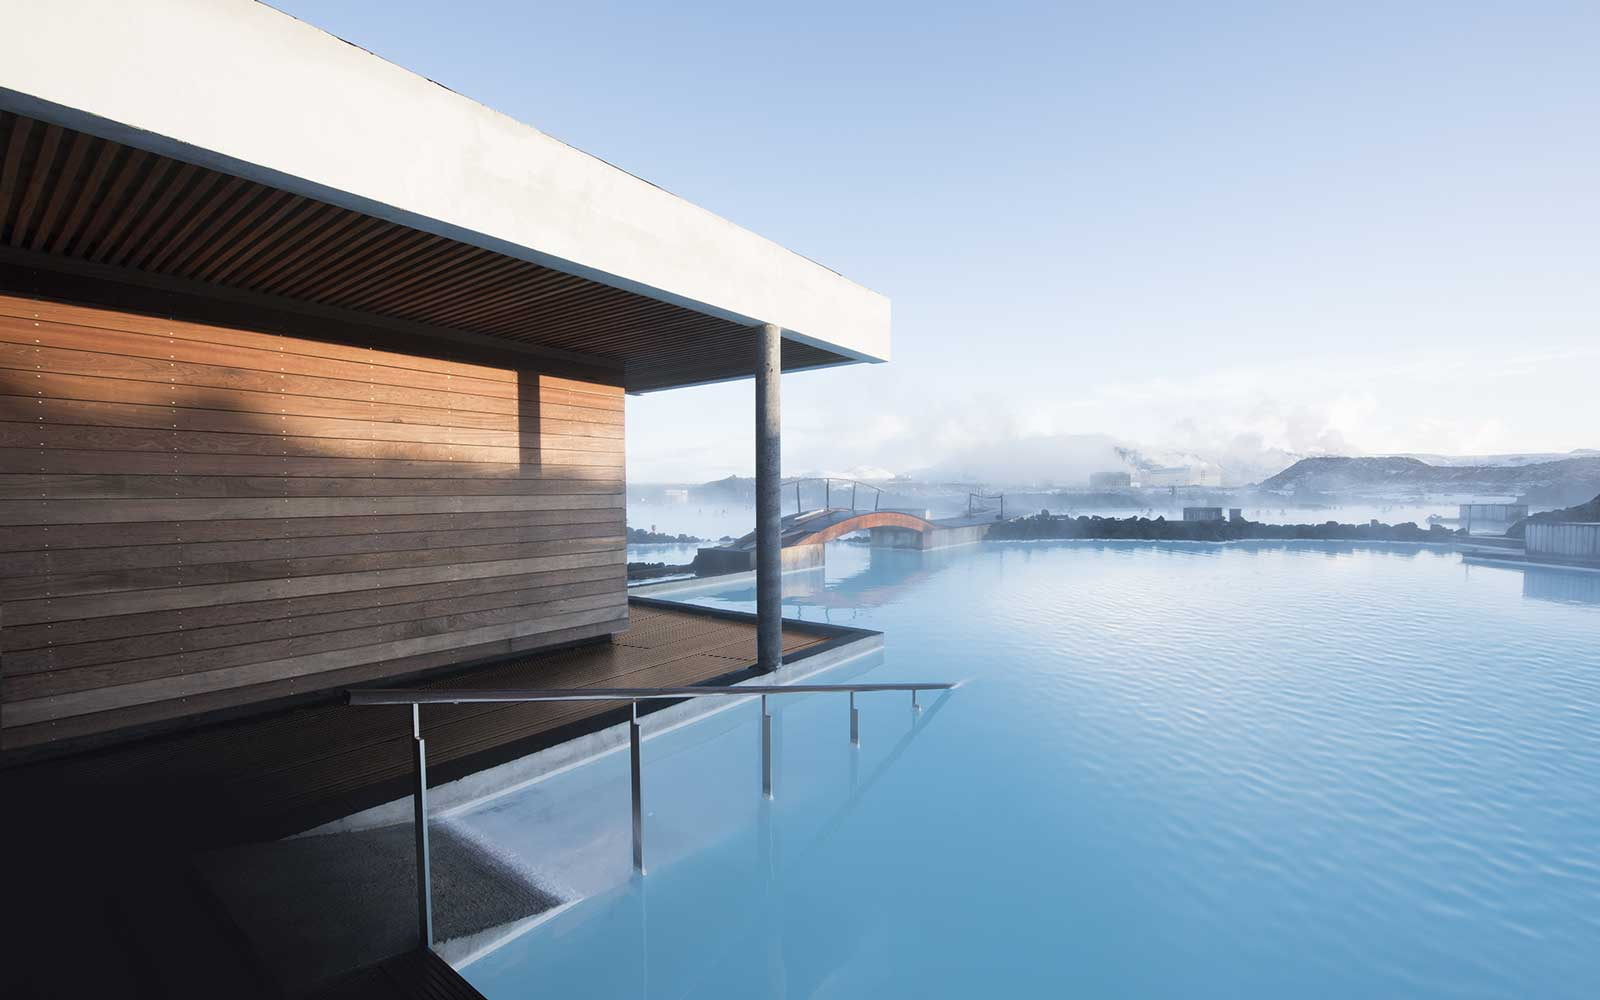 Relax in Your Own Private Lagoon at This Gorgeous Retreat in Iceland